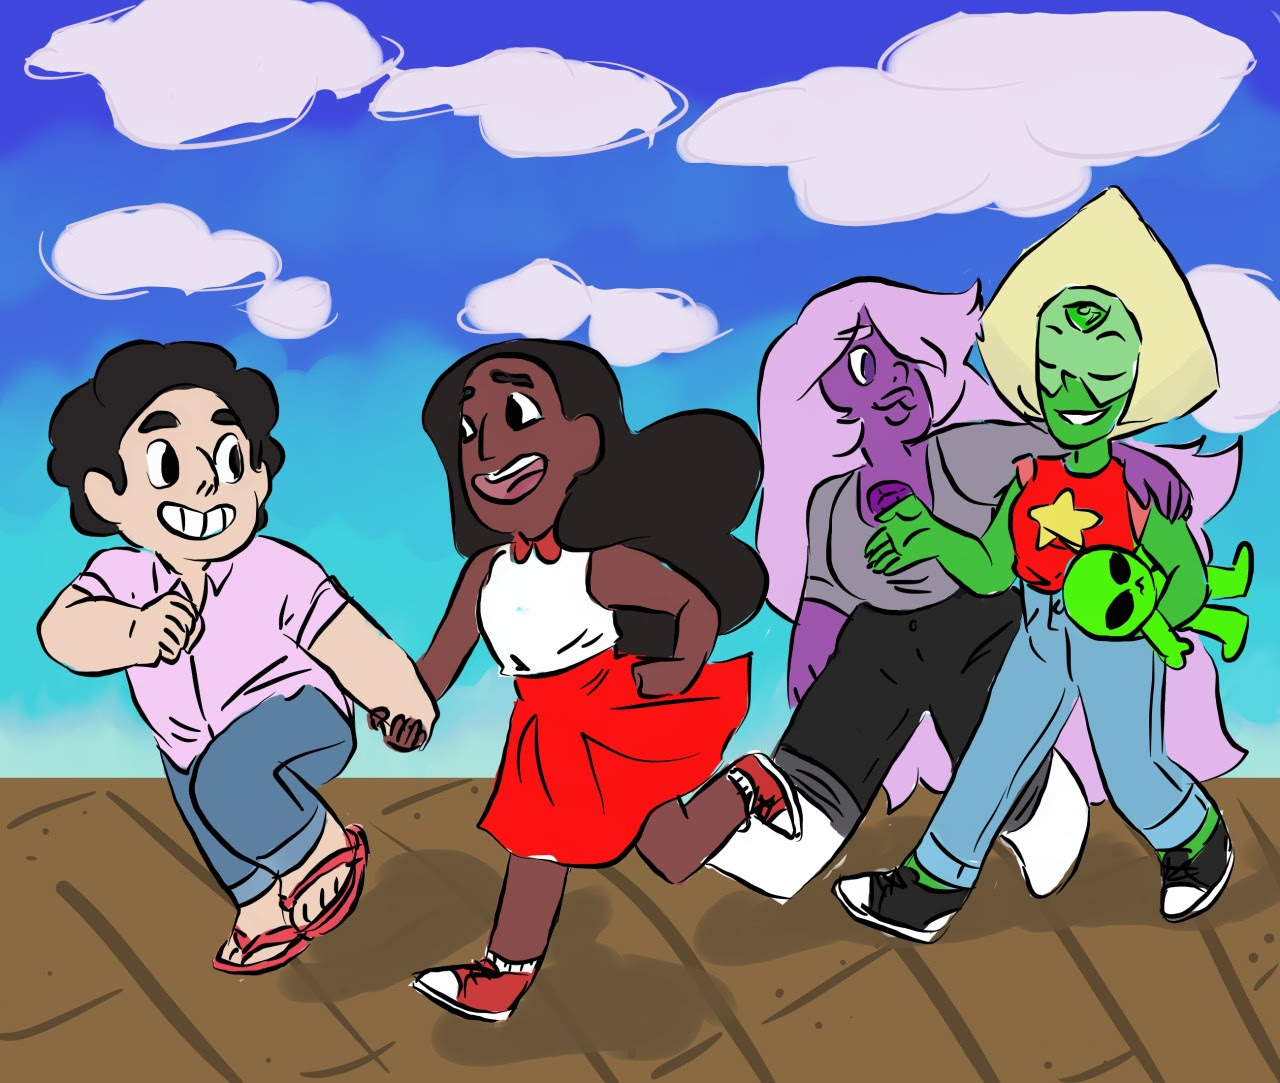 amedotbomb Day 4: double date this is my first time drawing Steven and Connie